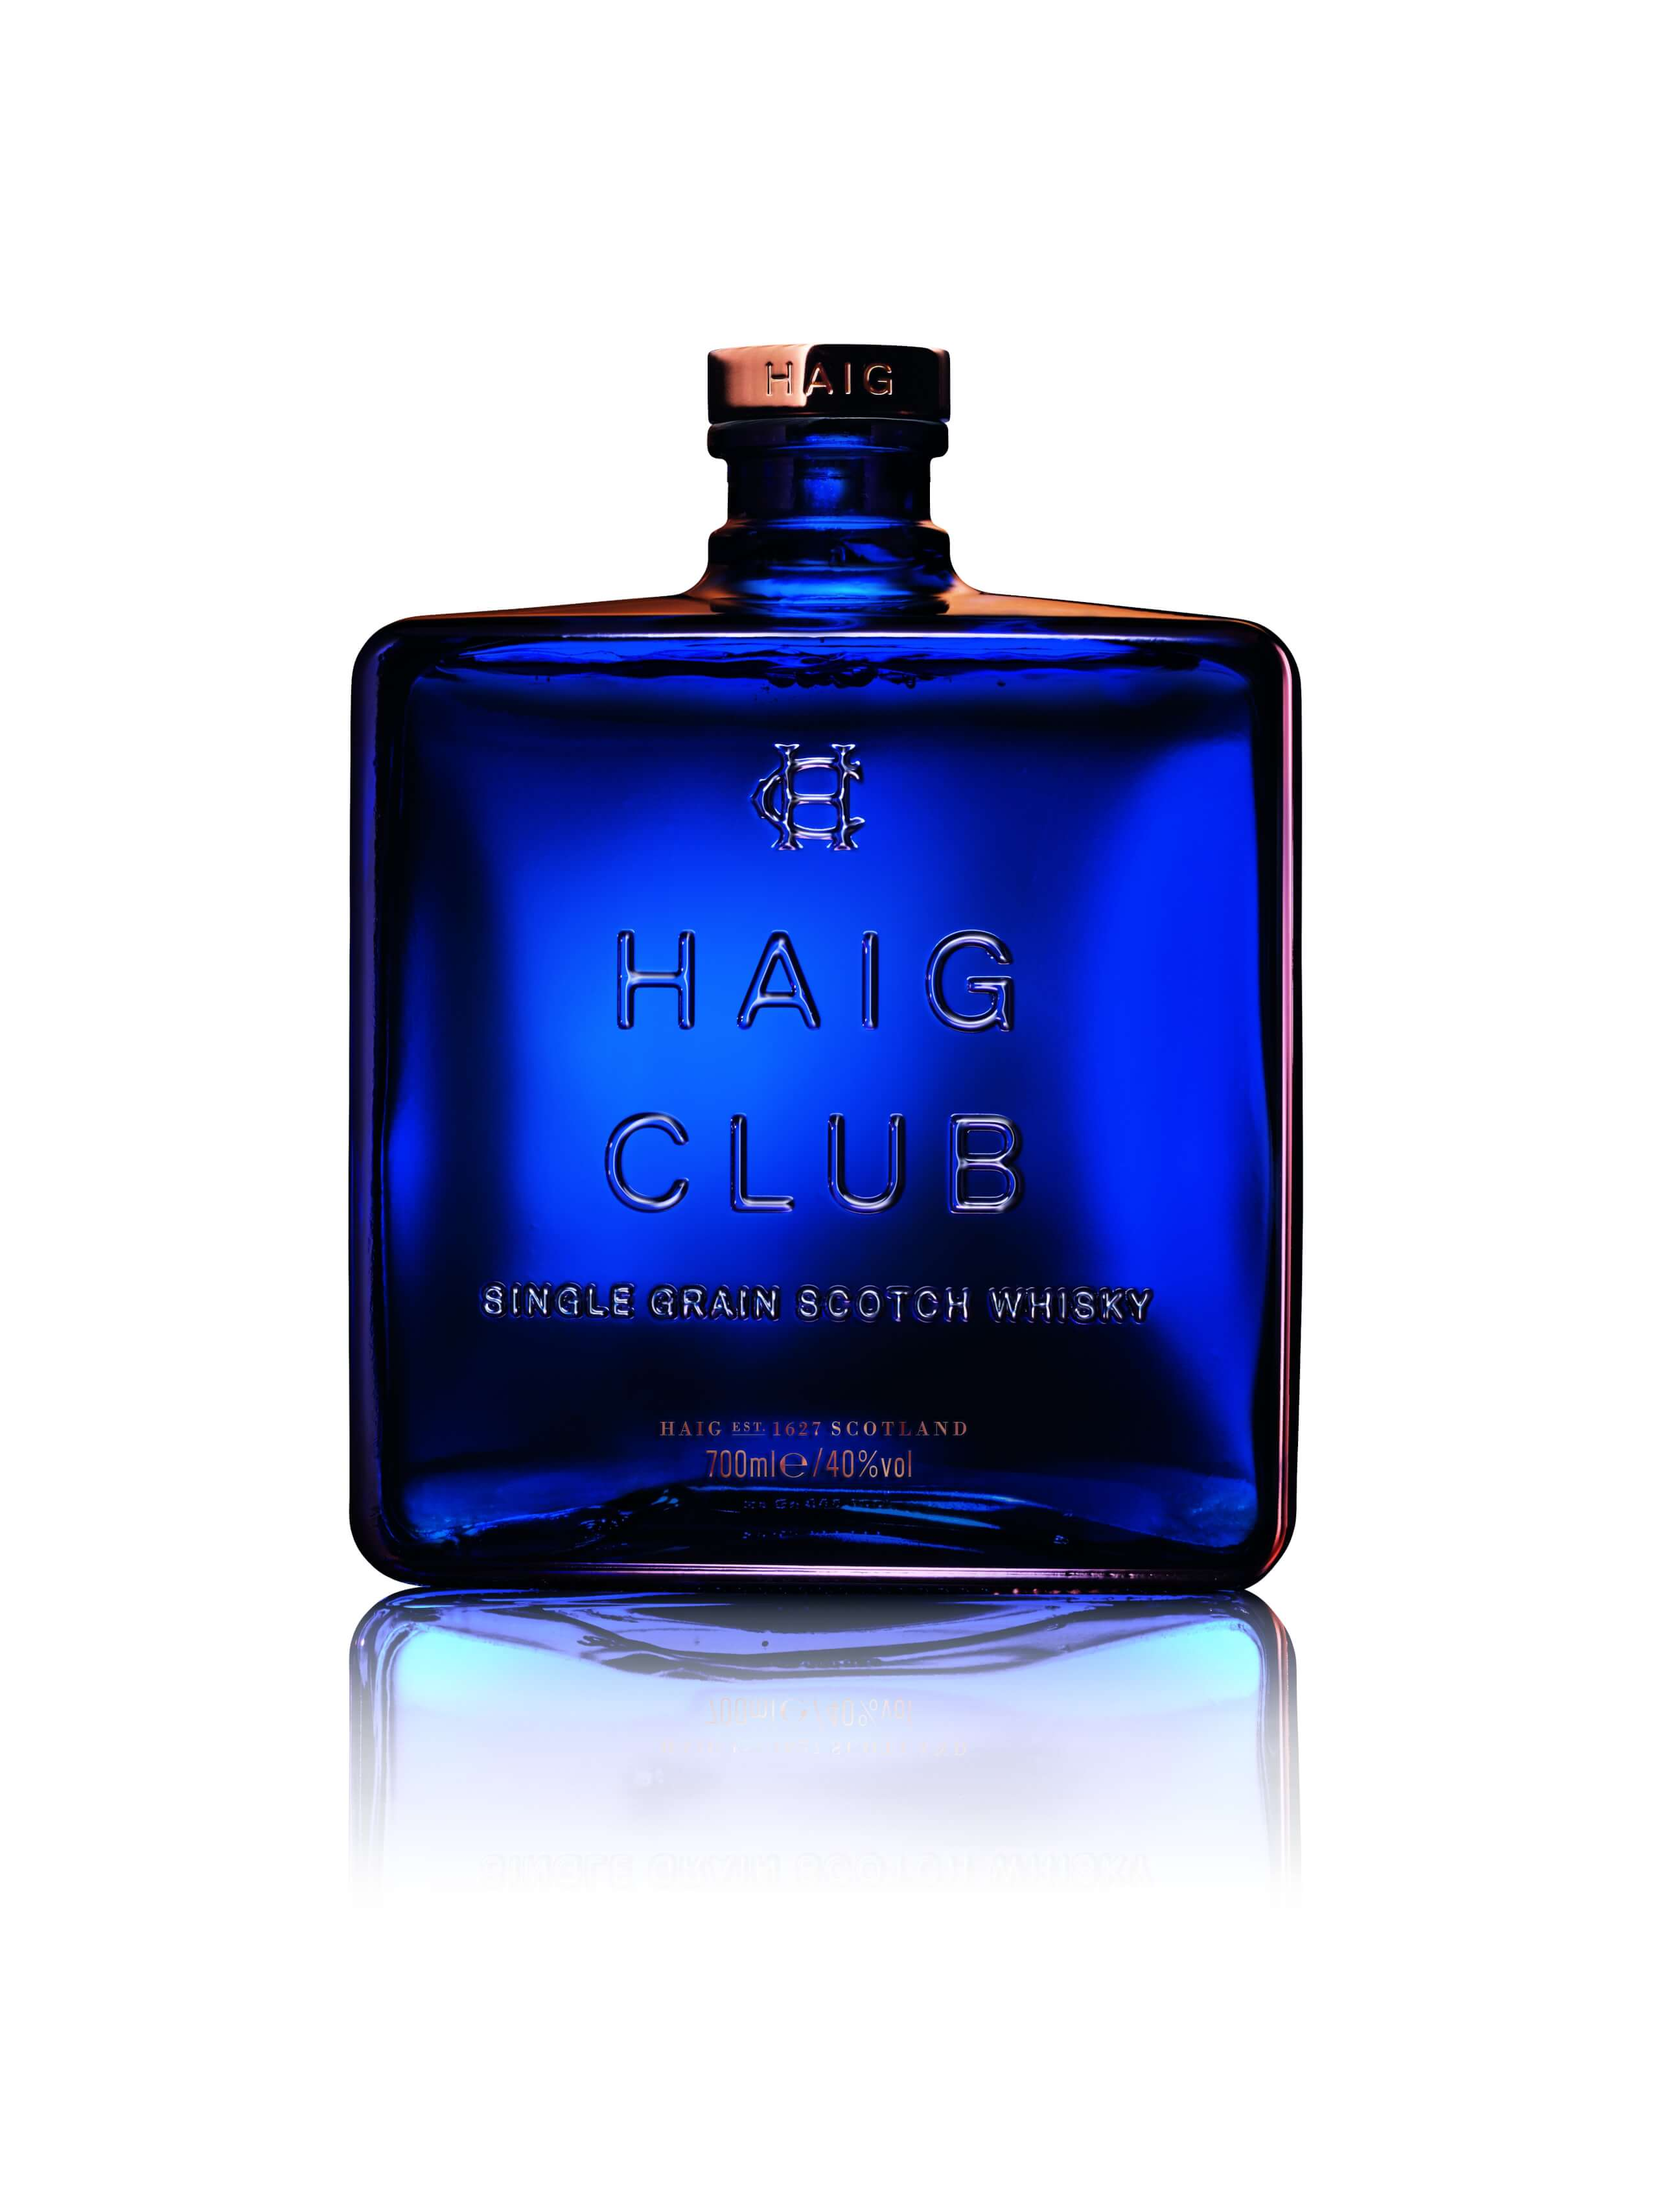 Haig-Club-1, drinks trends, drinks trends 2015, cocktail bars, cocktail bars london, cocktails london, best cocktails in london, booze london, what to drink in London, London bars, best bars in London, best cocktails in London